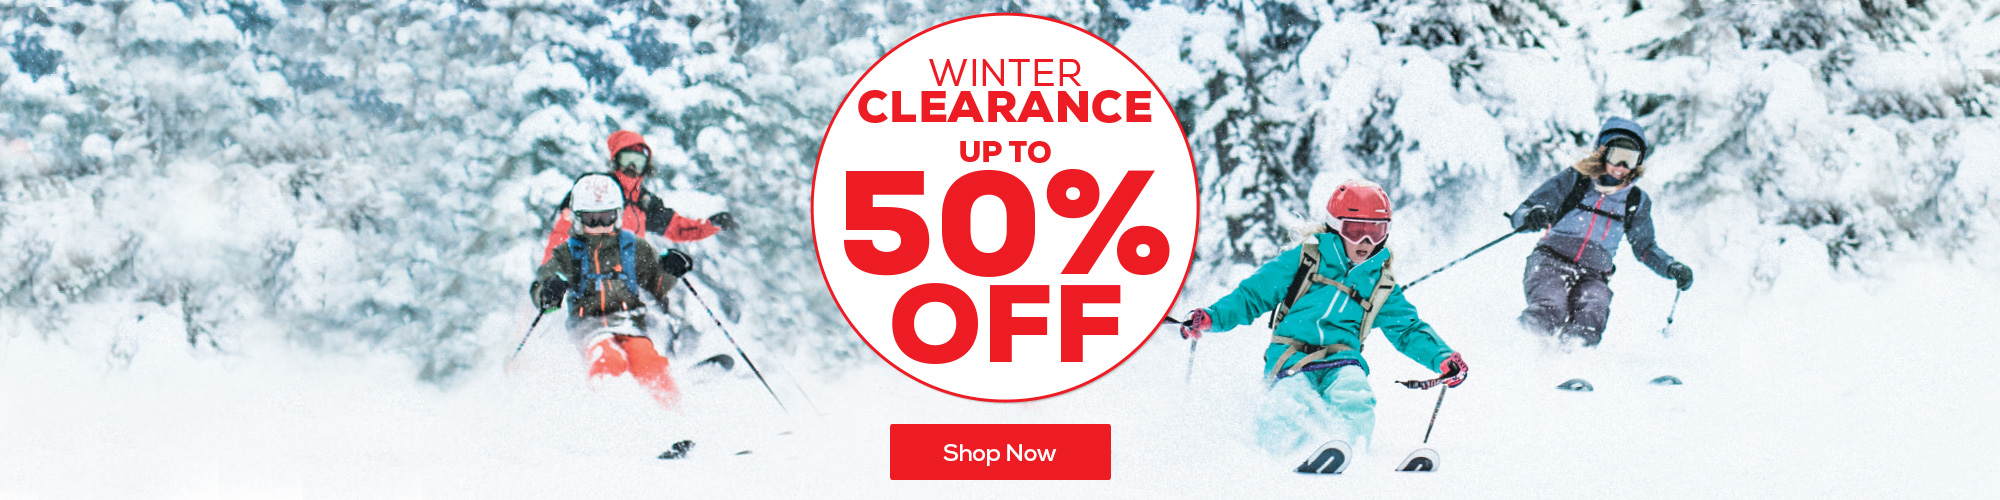 Up to 50% off winter clearance.